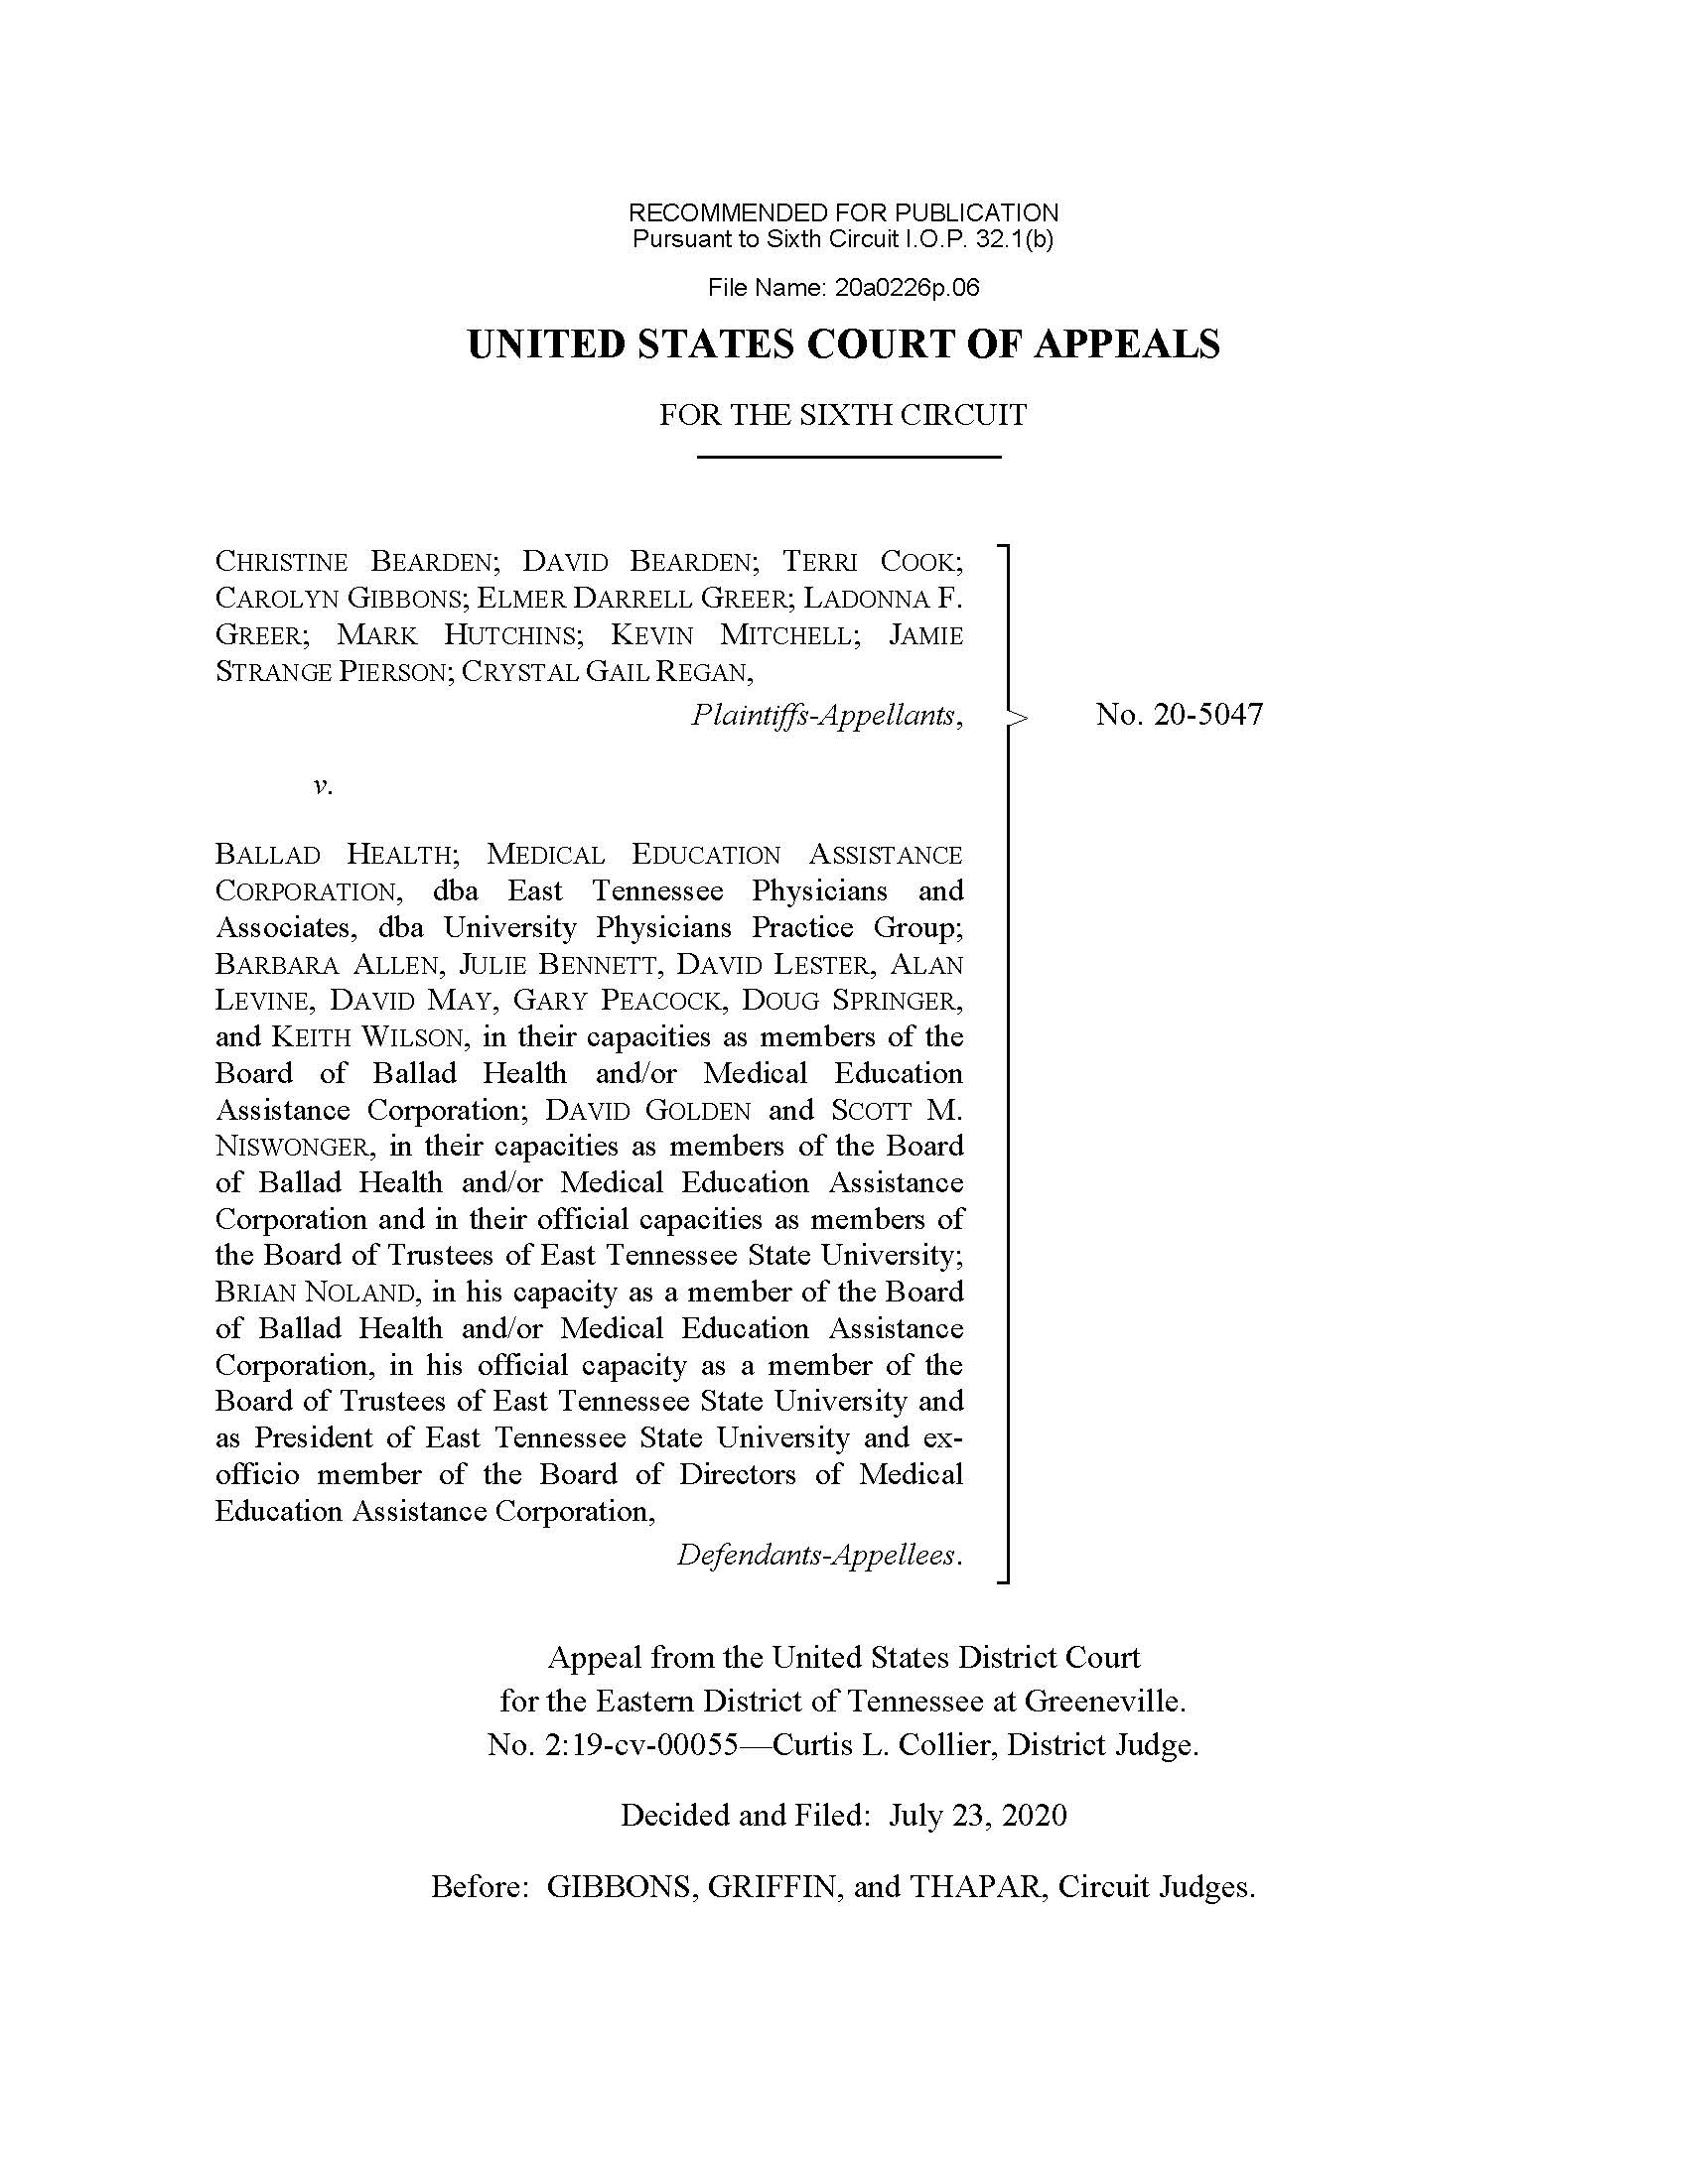 Page 1 of linked case (Bearden v. Ballad Health)